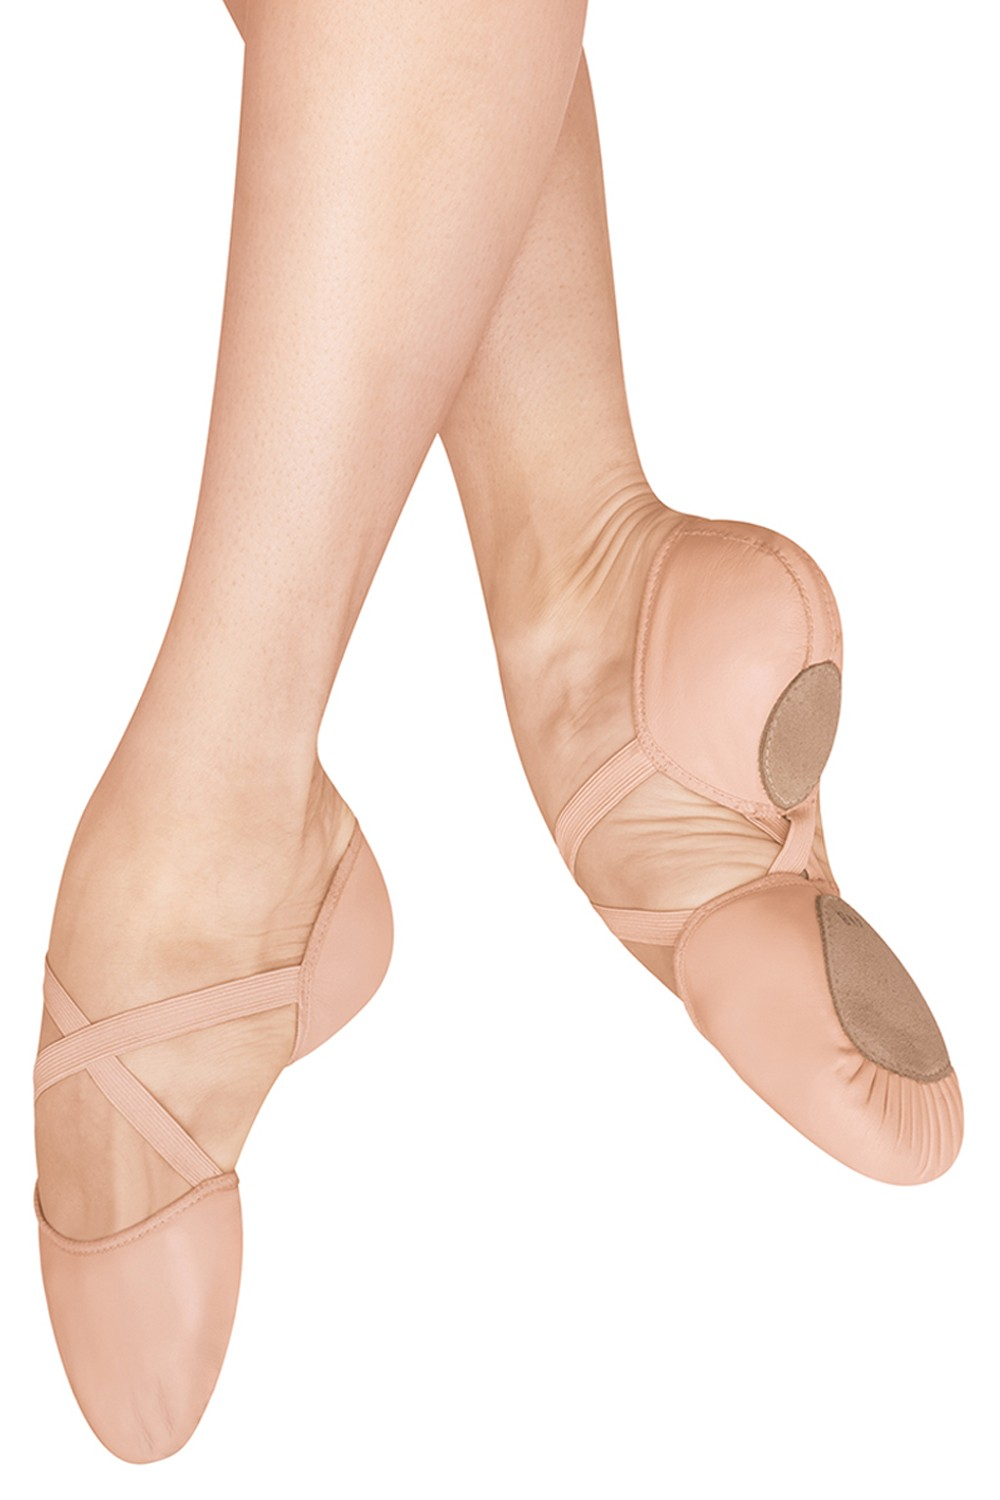 Elastosplit X Leather Women's Ballet Shoes